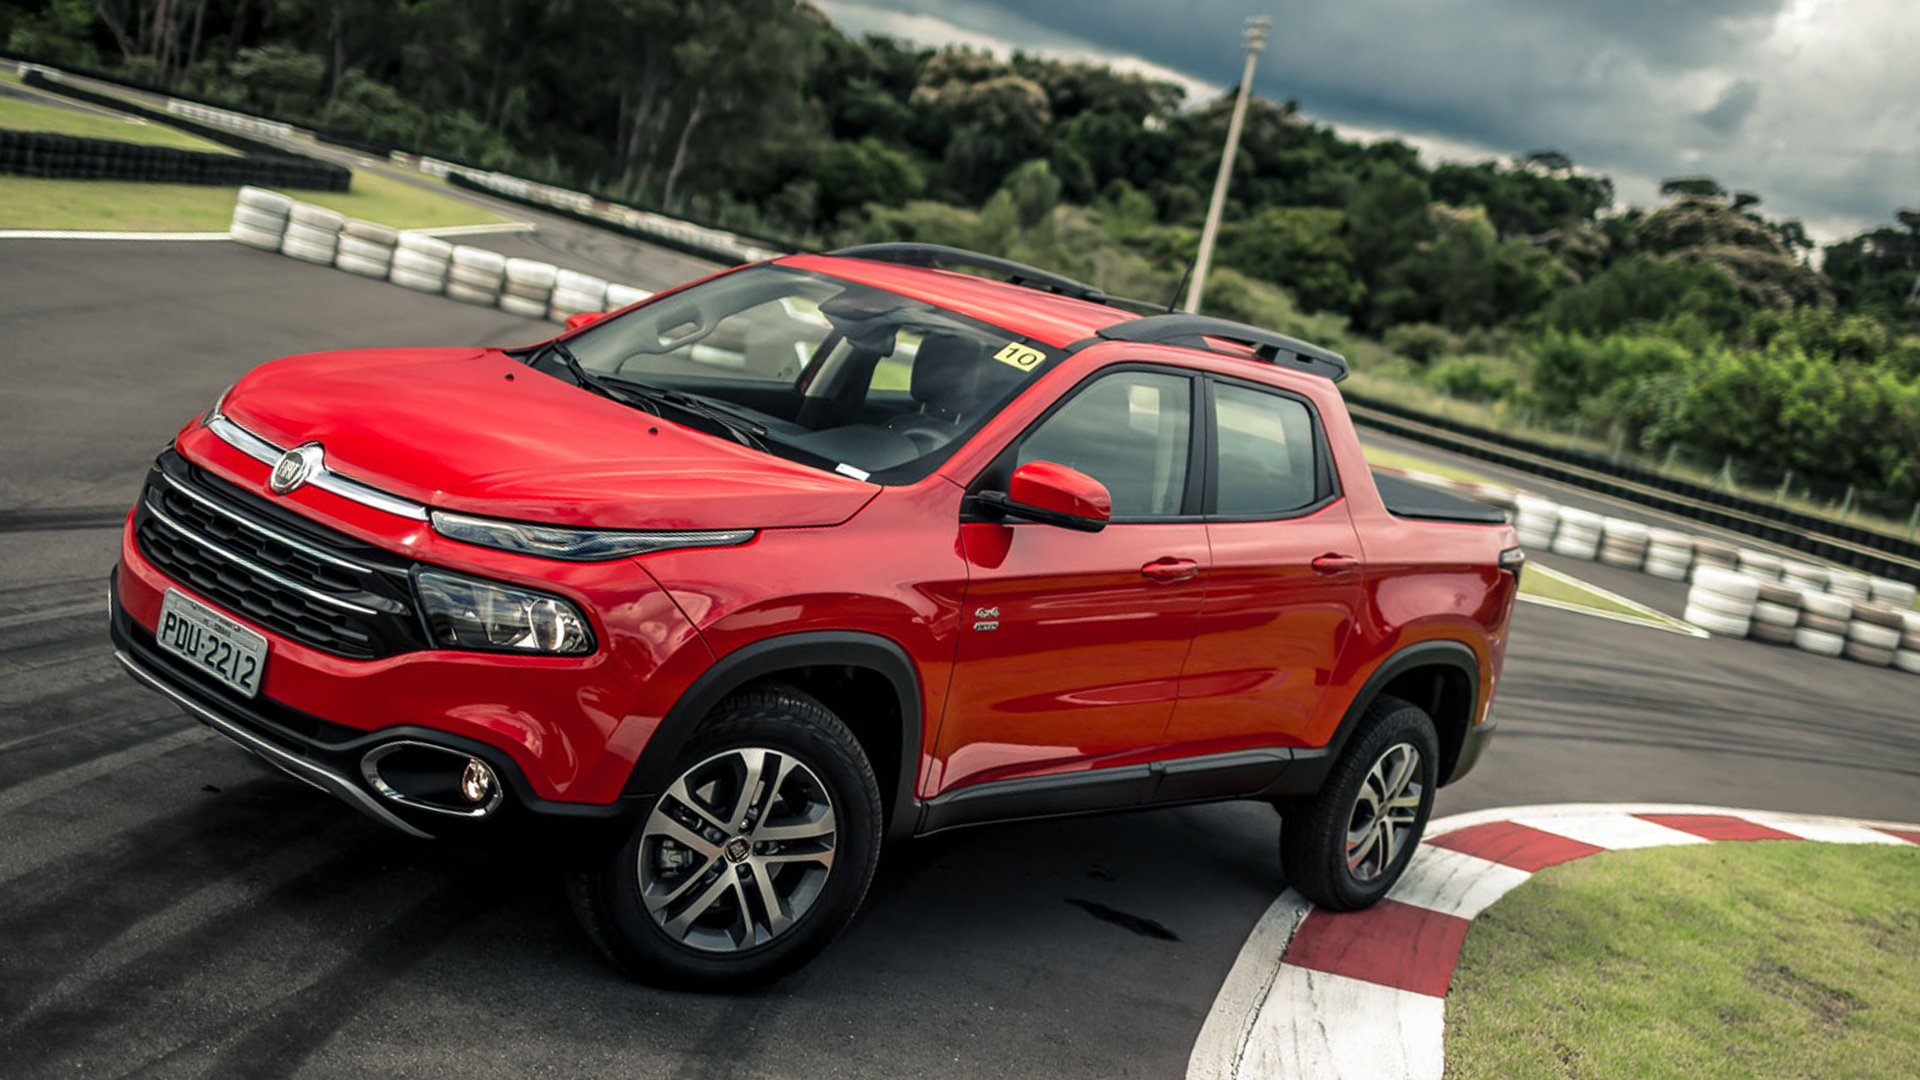 Fiat has taken the wraps off the refreshed Toro pickup truck. The 2020 version comes with new standard and available equipment, and the turbo diesel is now obtainable in base.